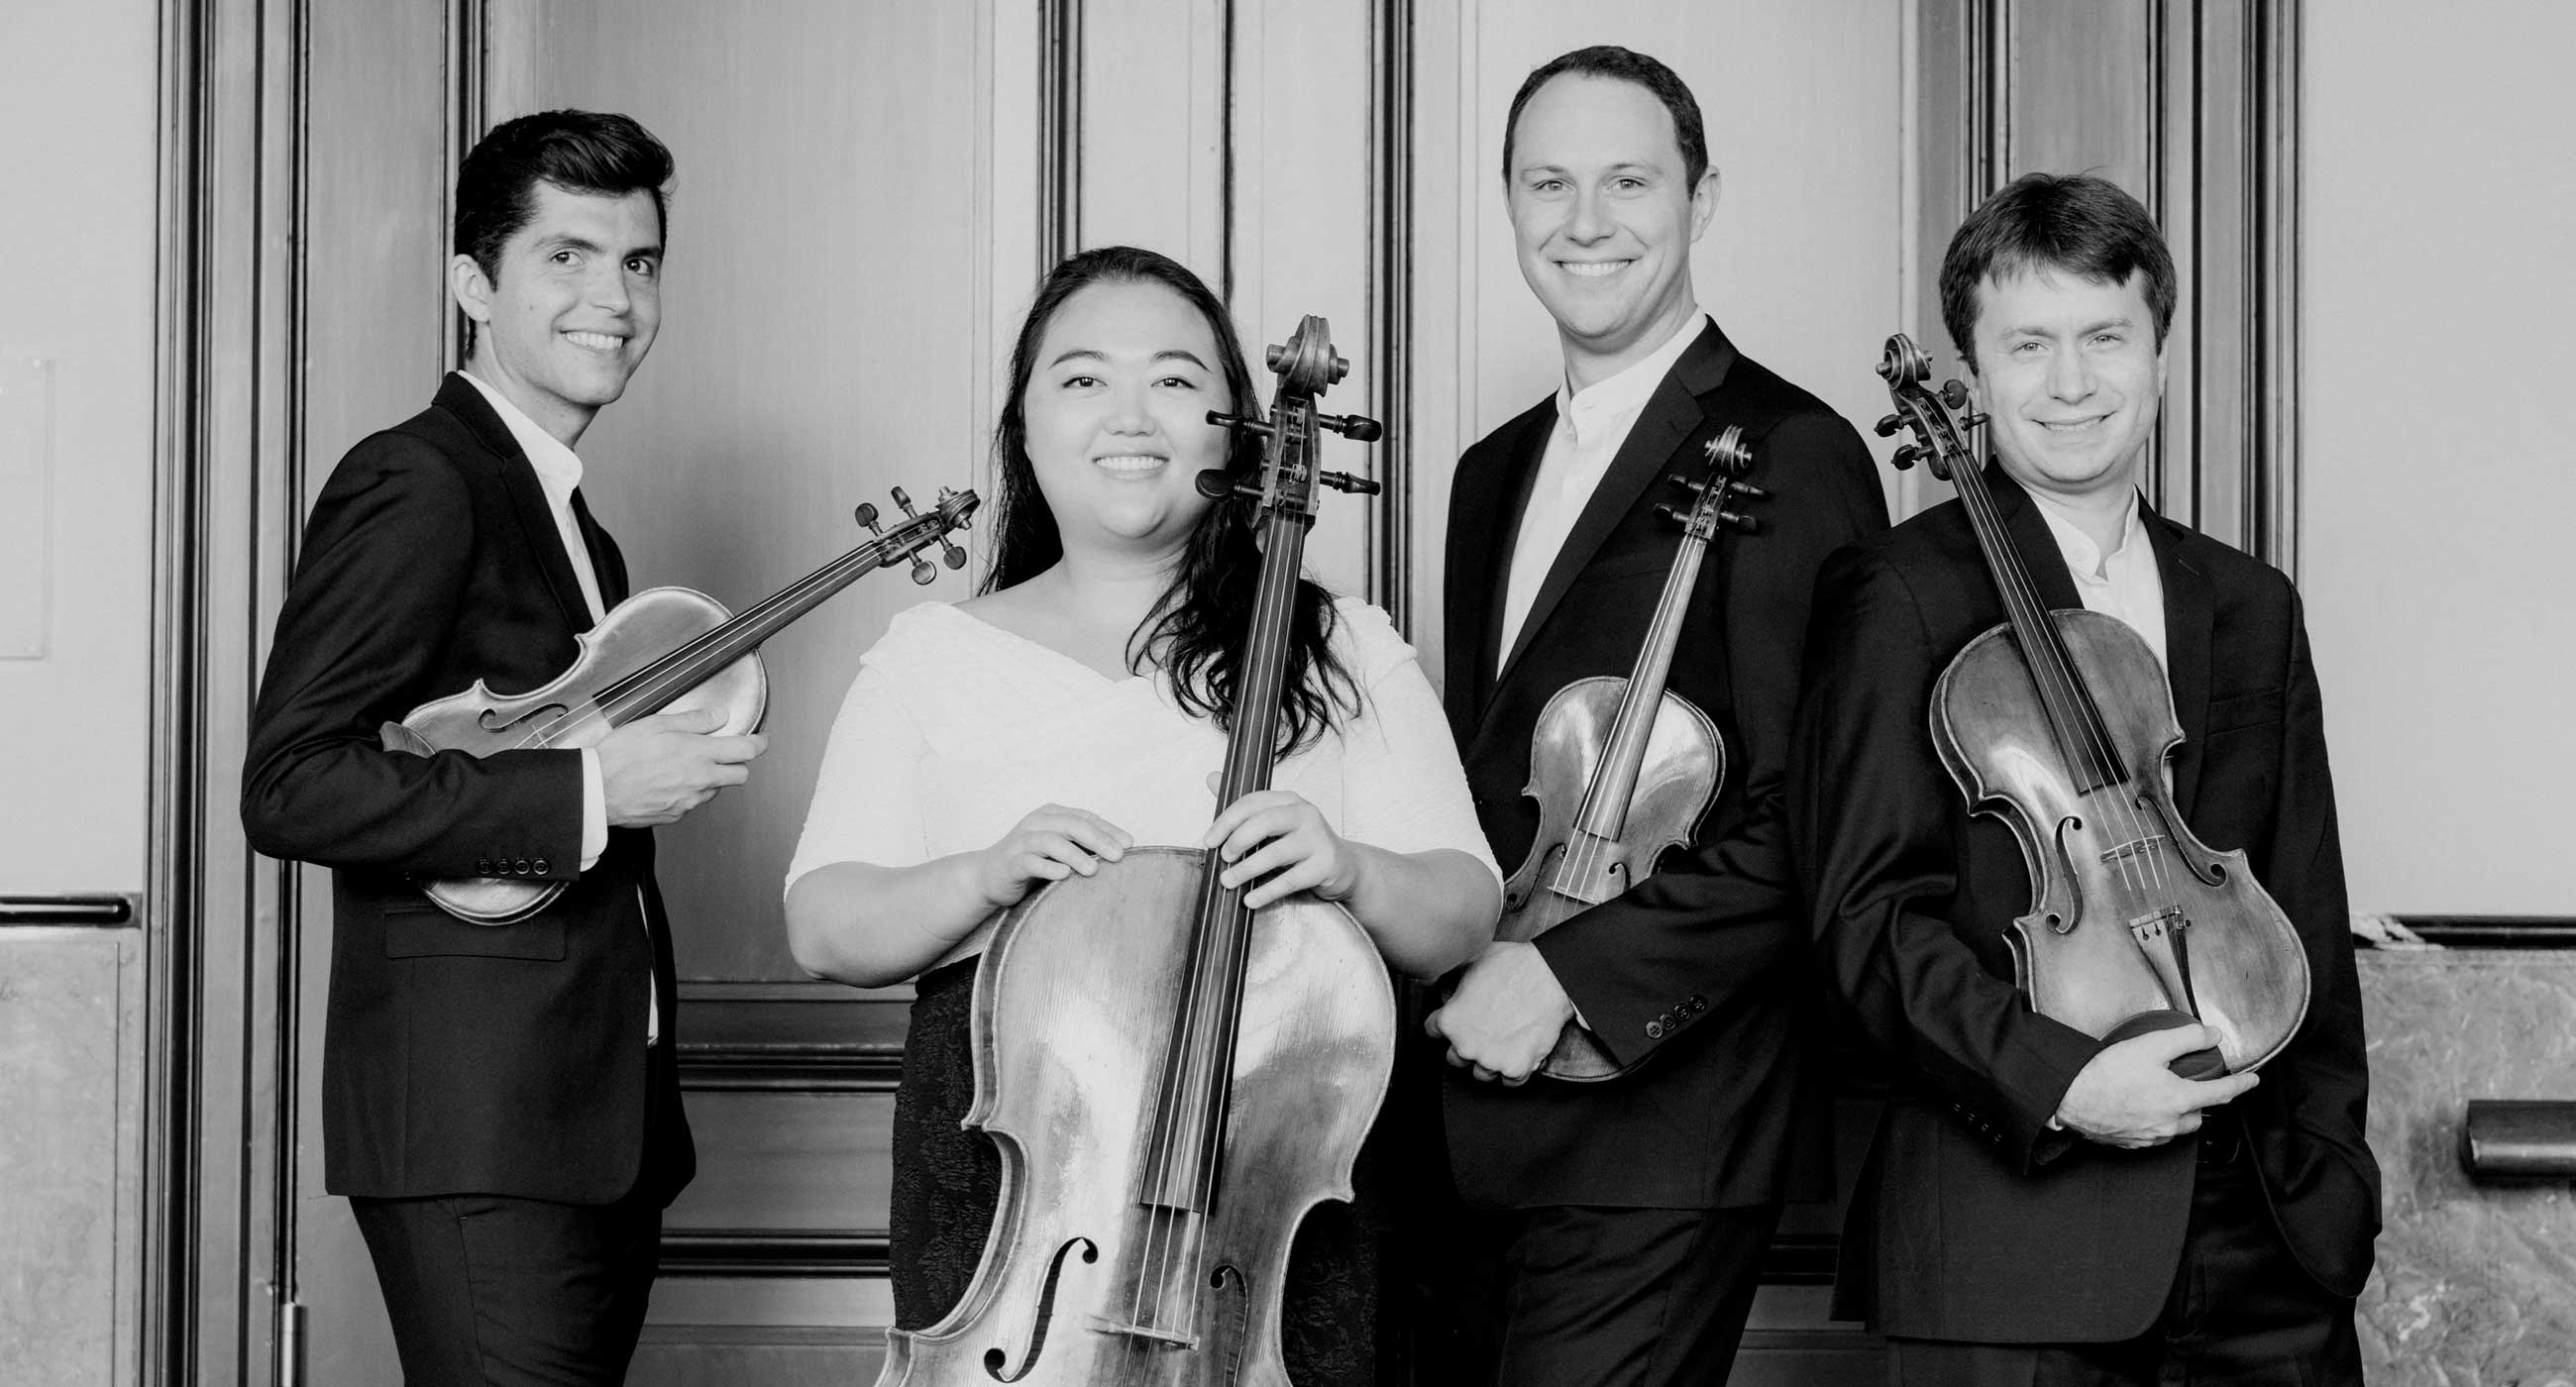 The Calidore Quartet holding their instruments and smiling in front of a fancy set of doors.